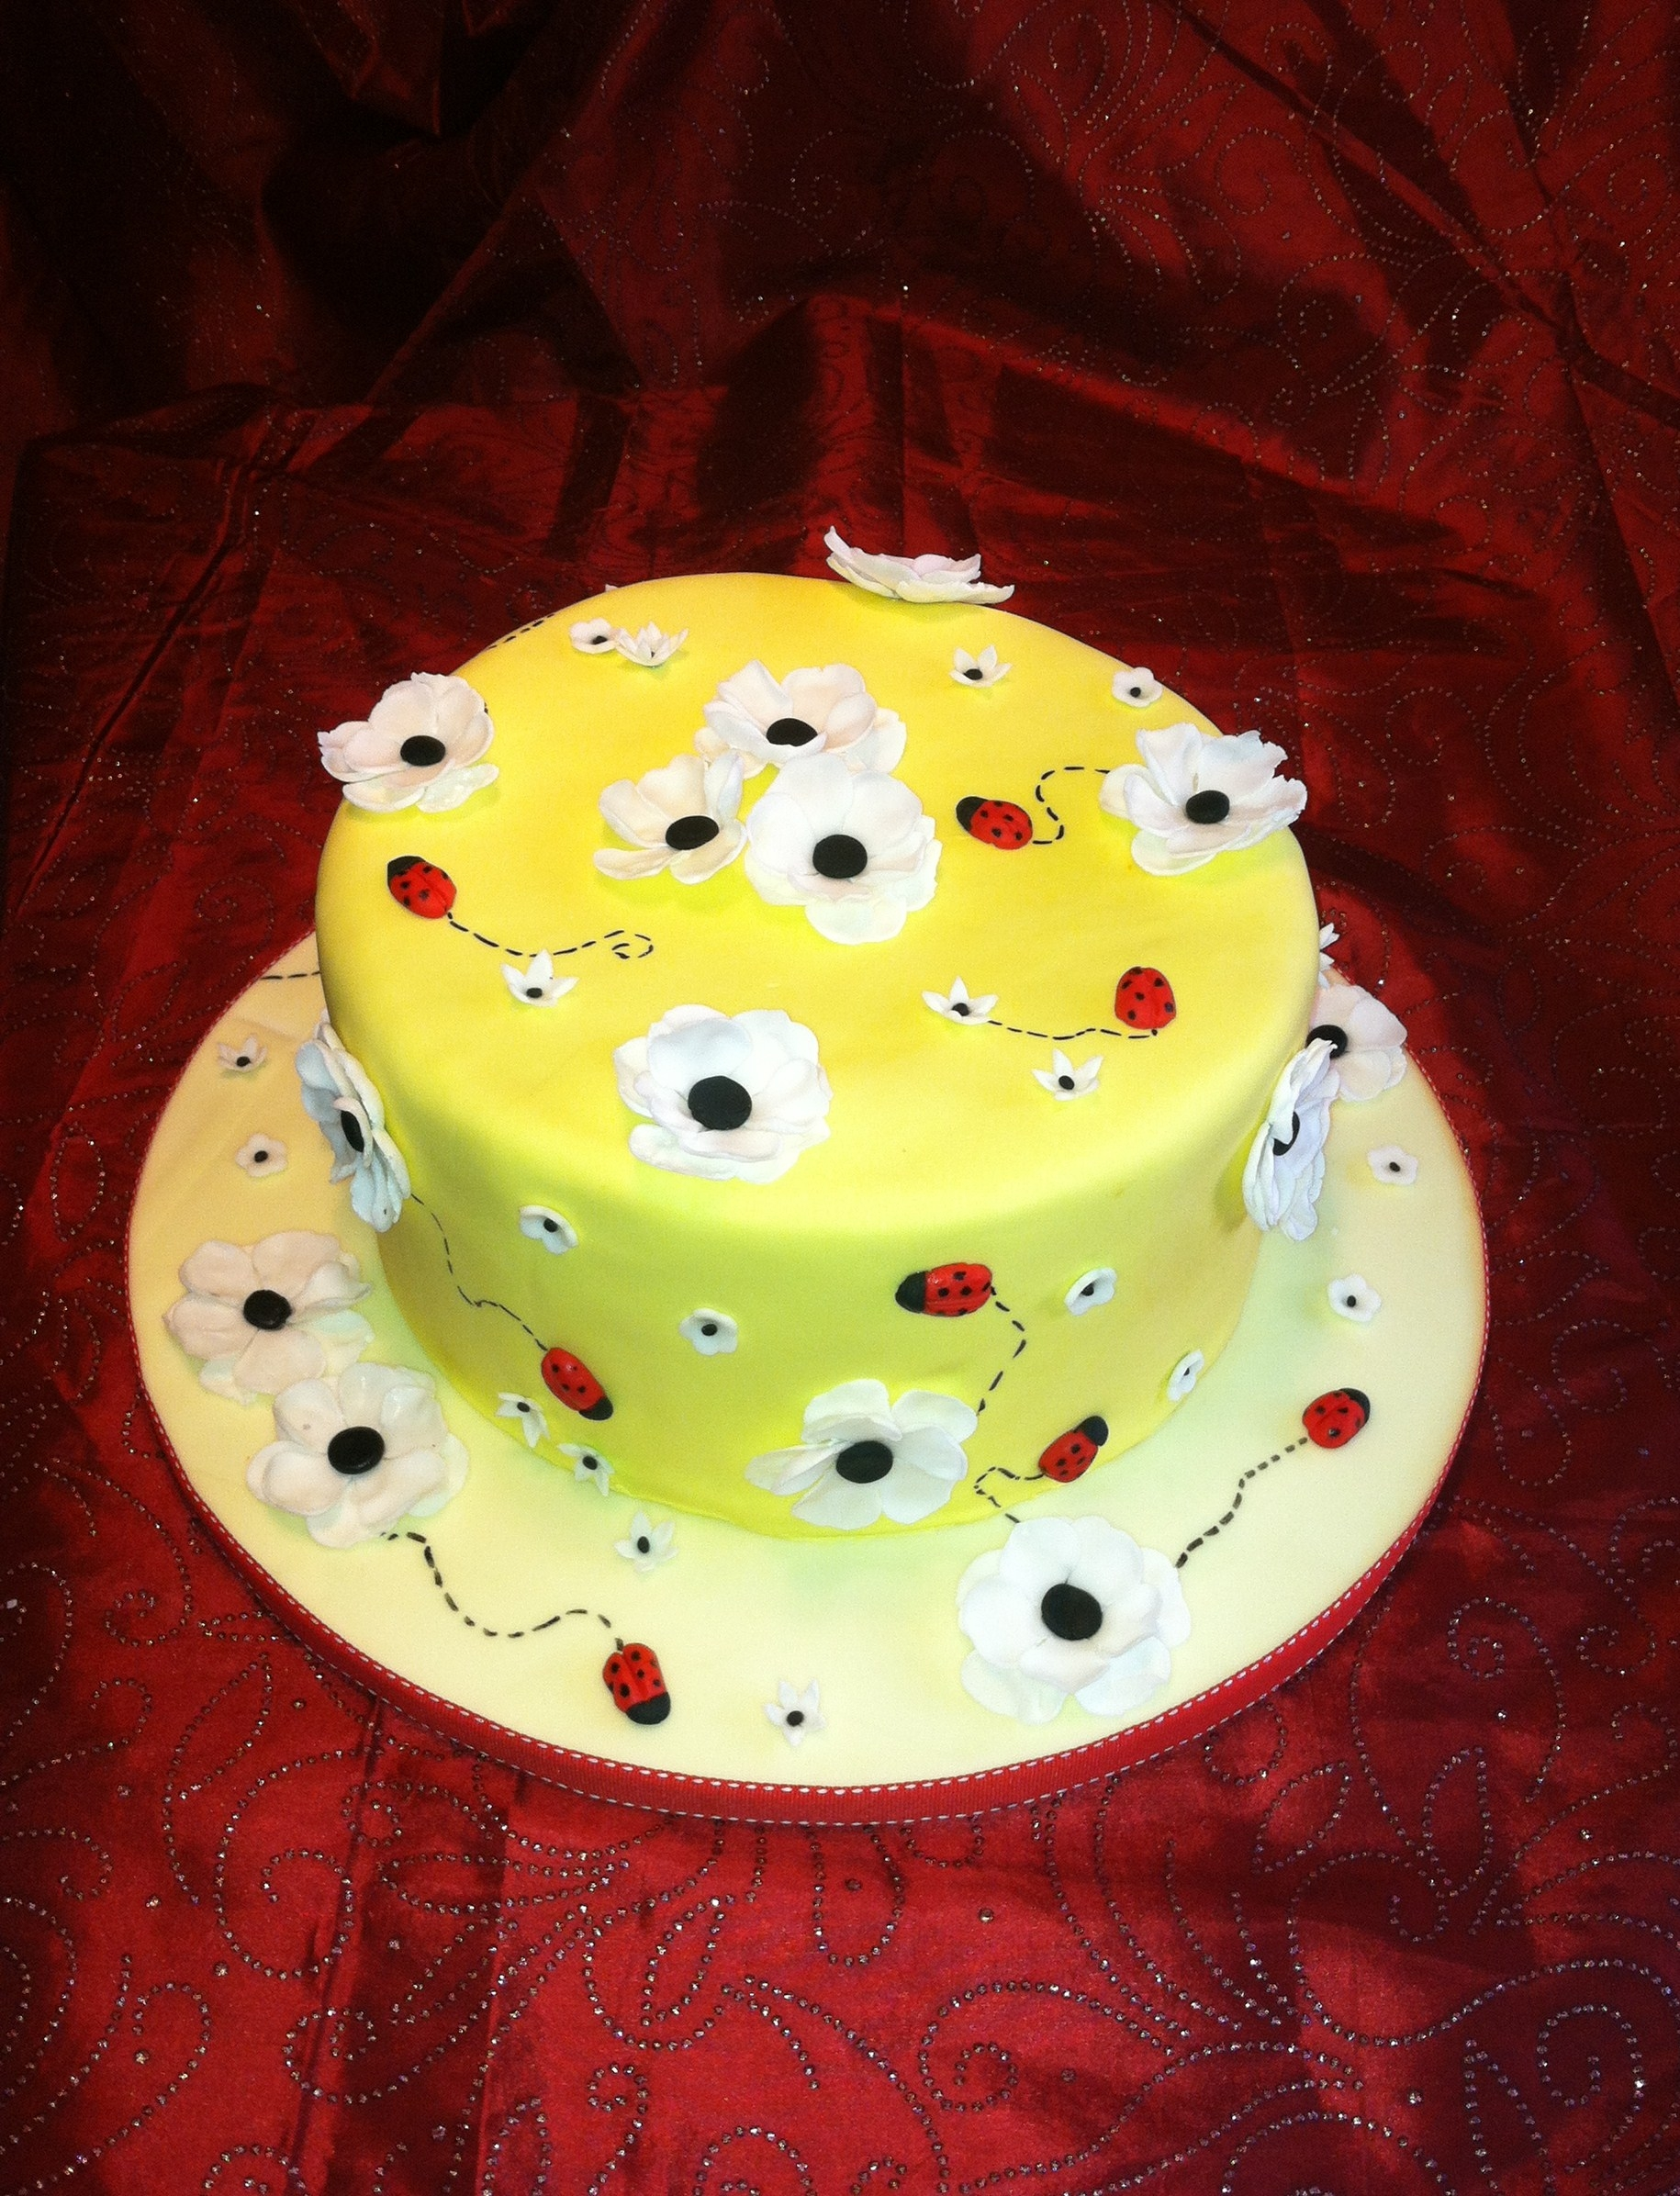 Cake for 2 little ladybugs on their babyshower.